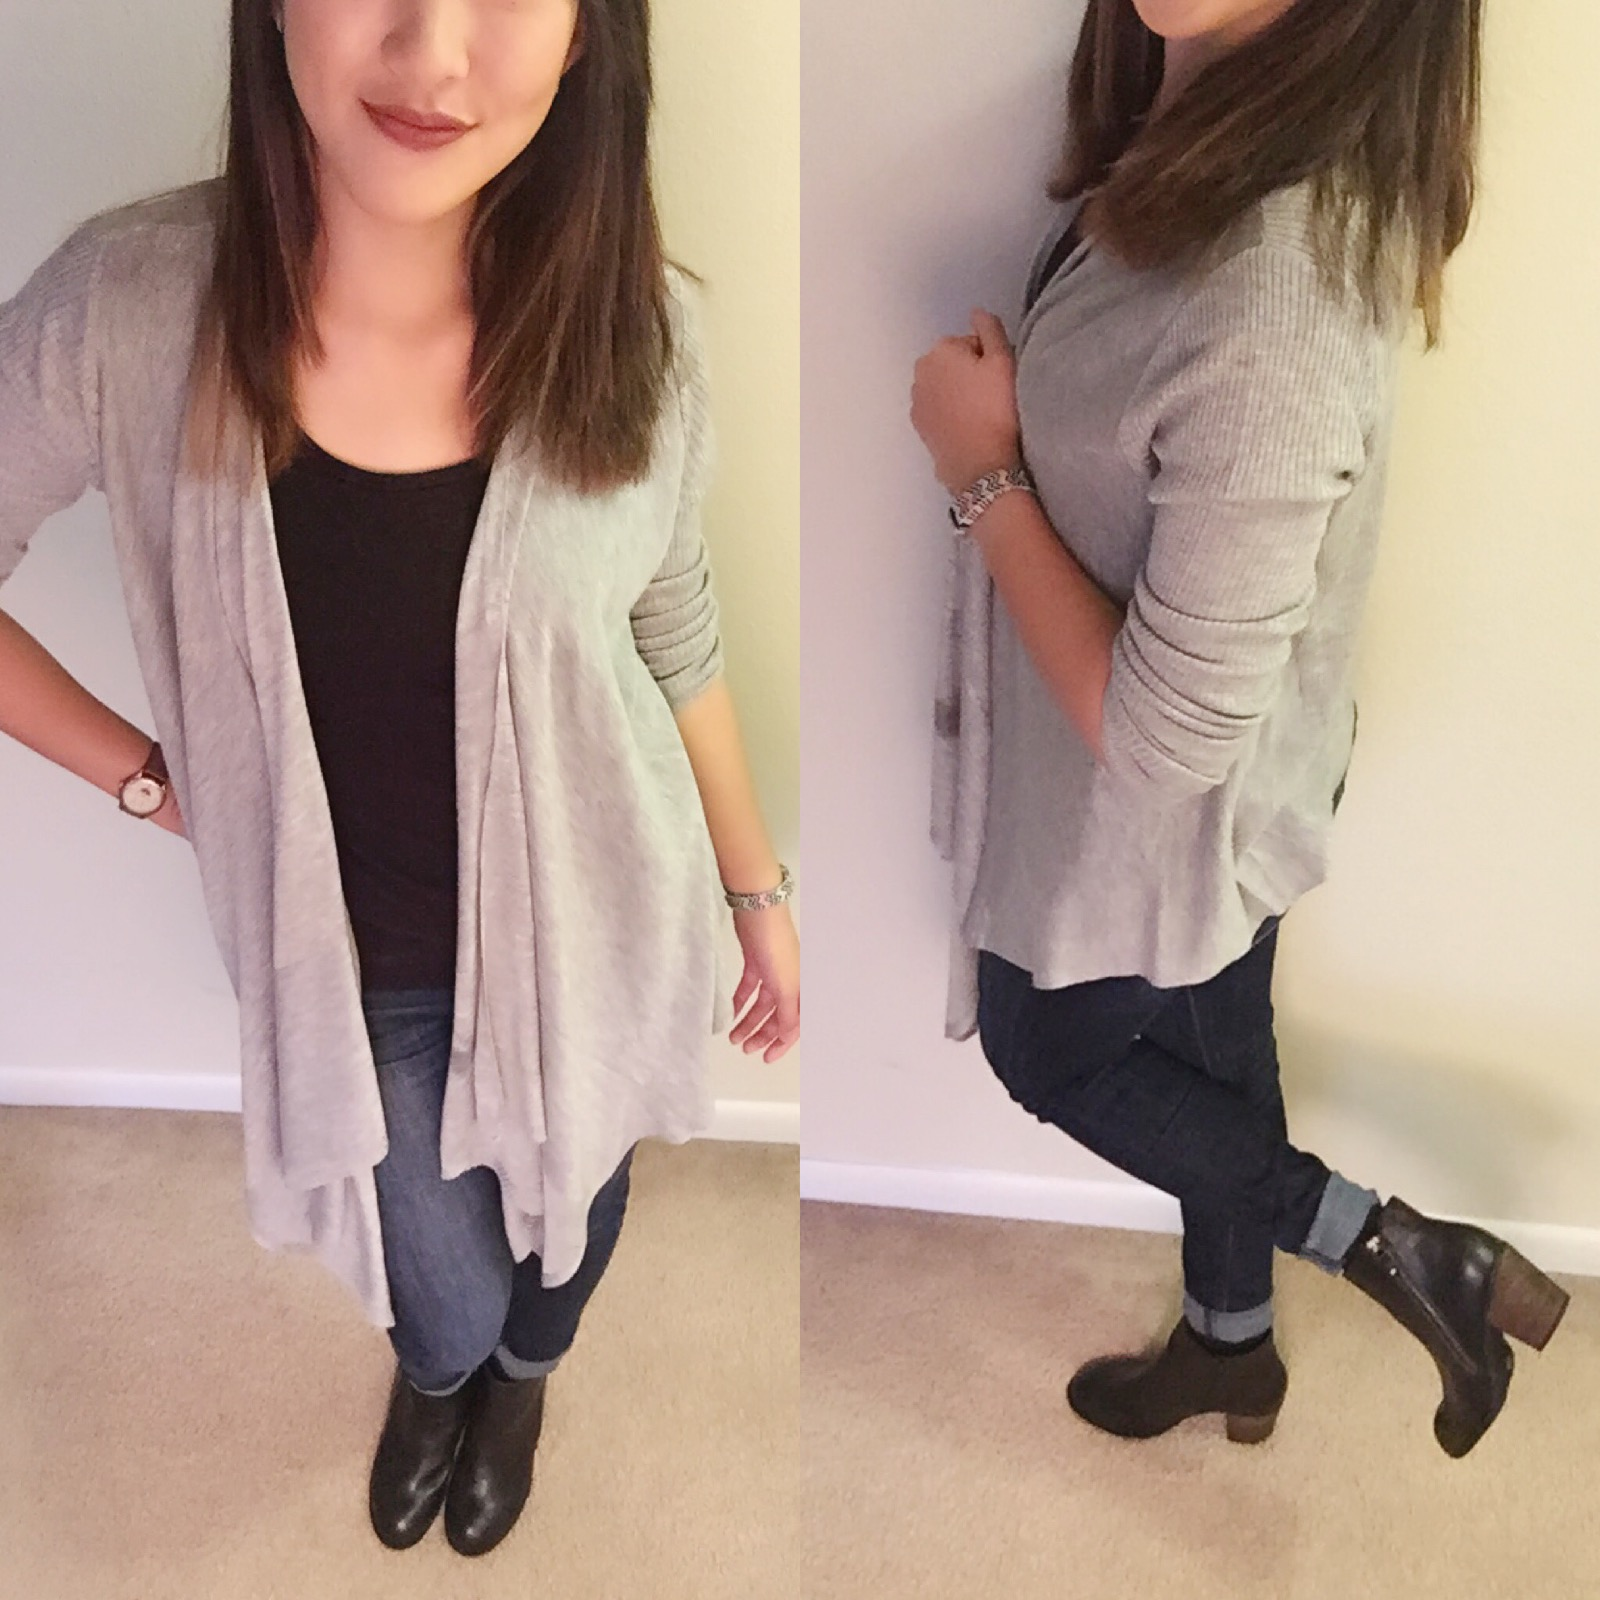 Shirt: F21 / Cardigan: Target / Jeans: American Eagle / Boots: DSW / Lip liner: Lord & Berry